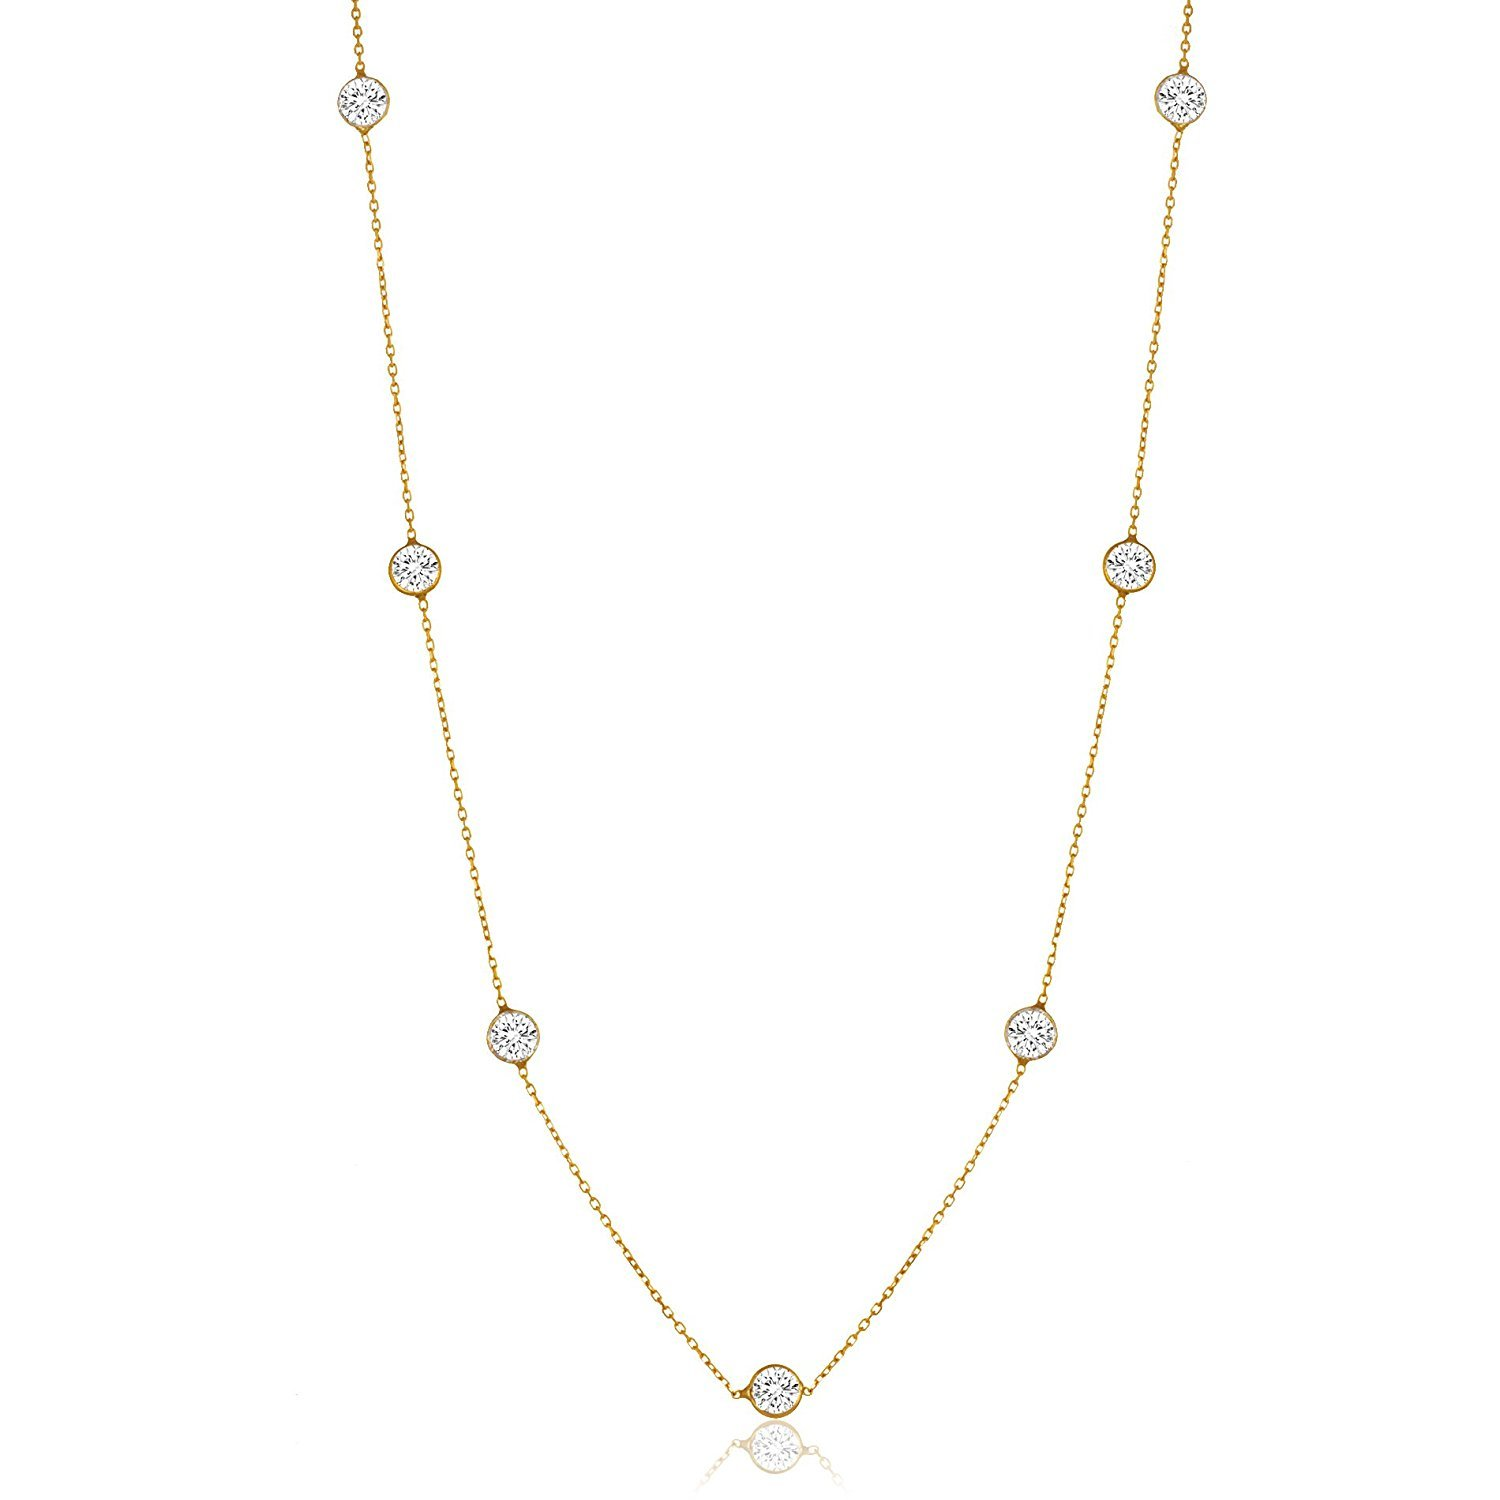 NYC Sterling Women Gold Plated Sterling Silver 3MM Round Cubic Zirconia Station Necklace 16''-30'' (16)